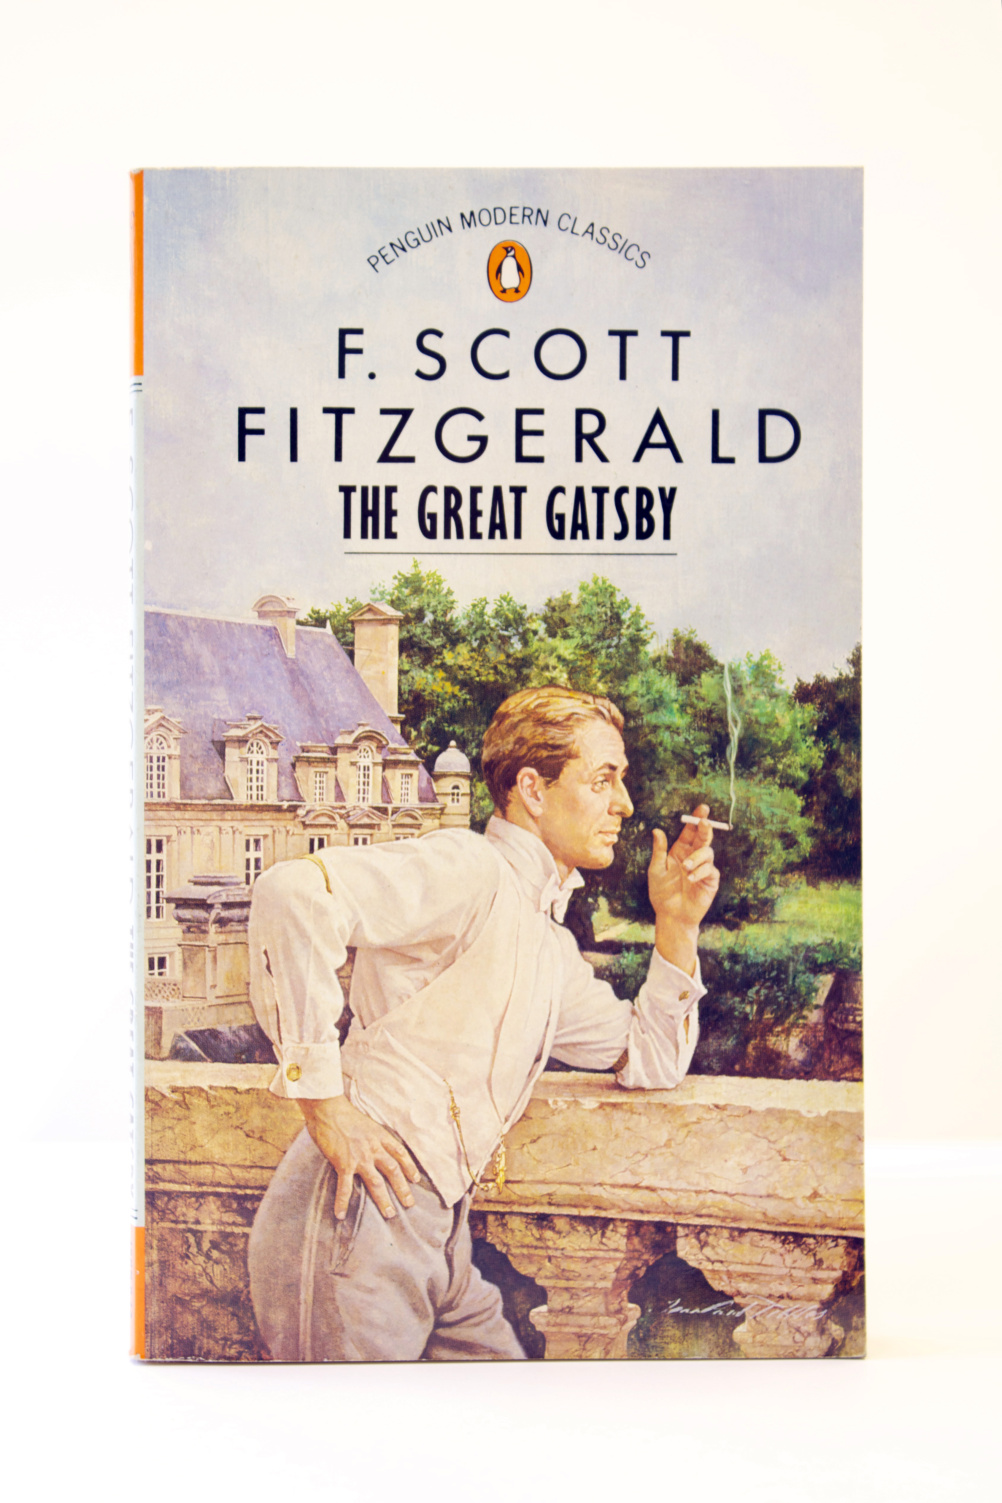 The Great Gatsby, F Scott Fitzgerald